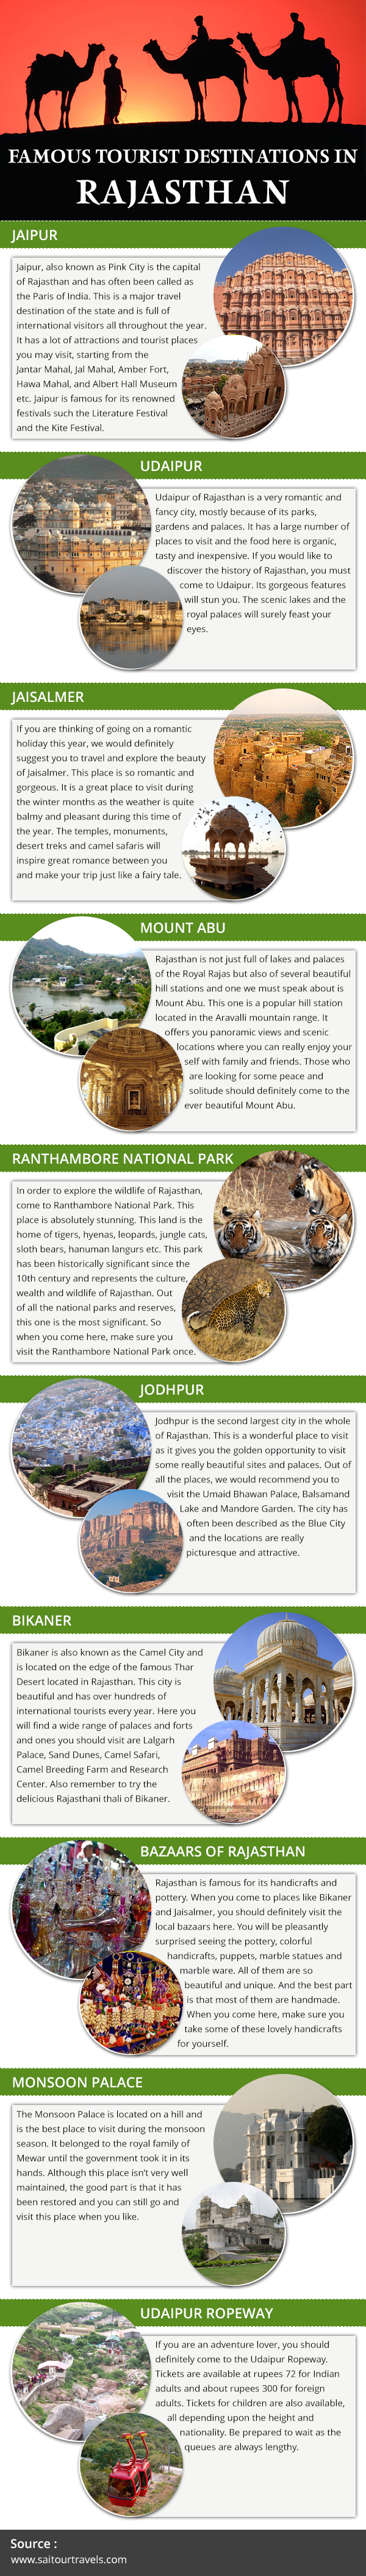 Famous-Tourist-Destinations-in-Rajasthan